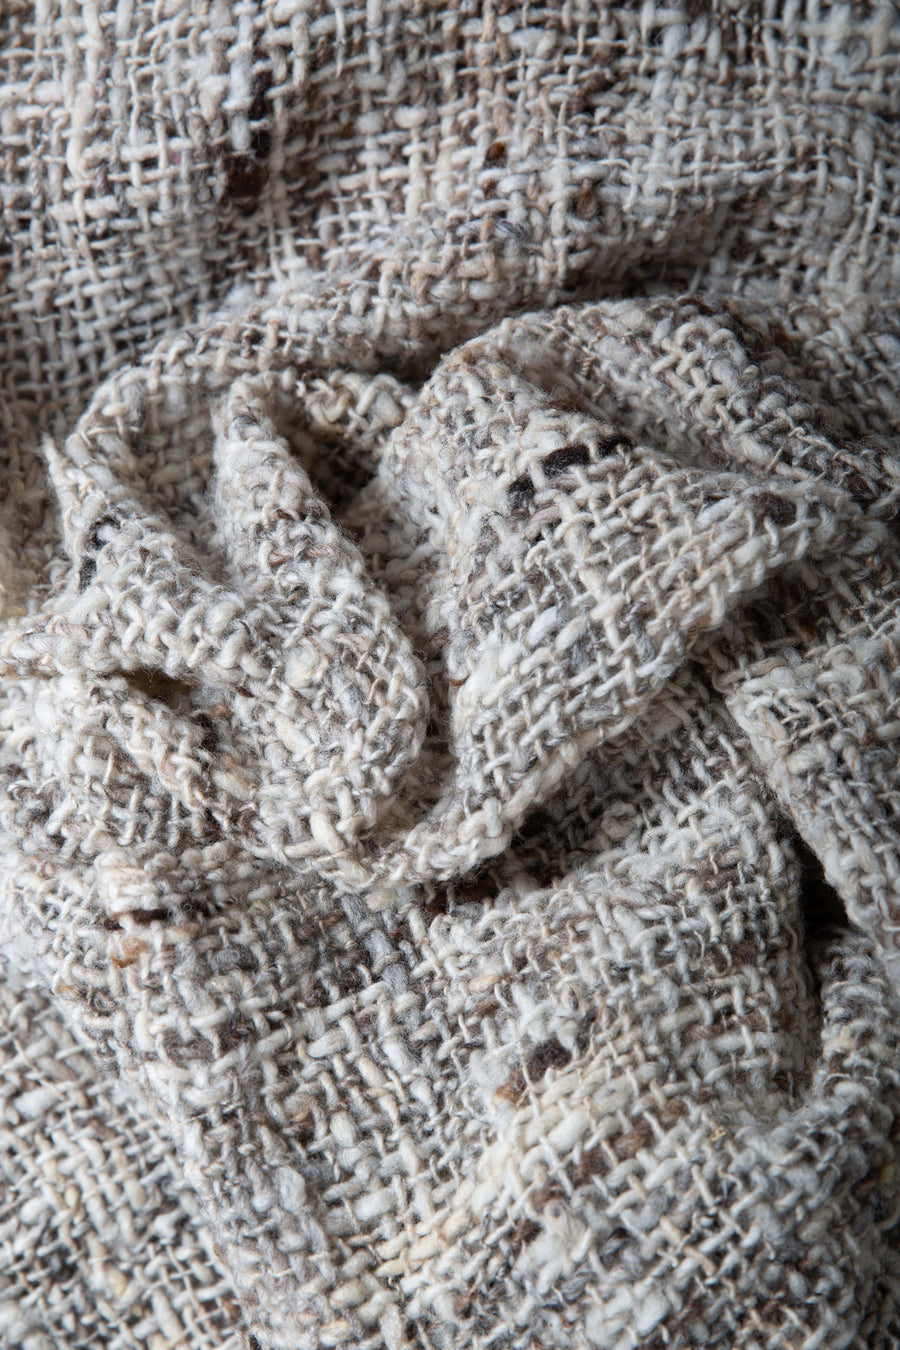 This is a close-up on just the woven shawl, showing the detailed texture of the weave. Each thread is a unique color and thickness.